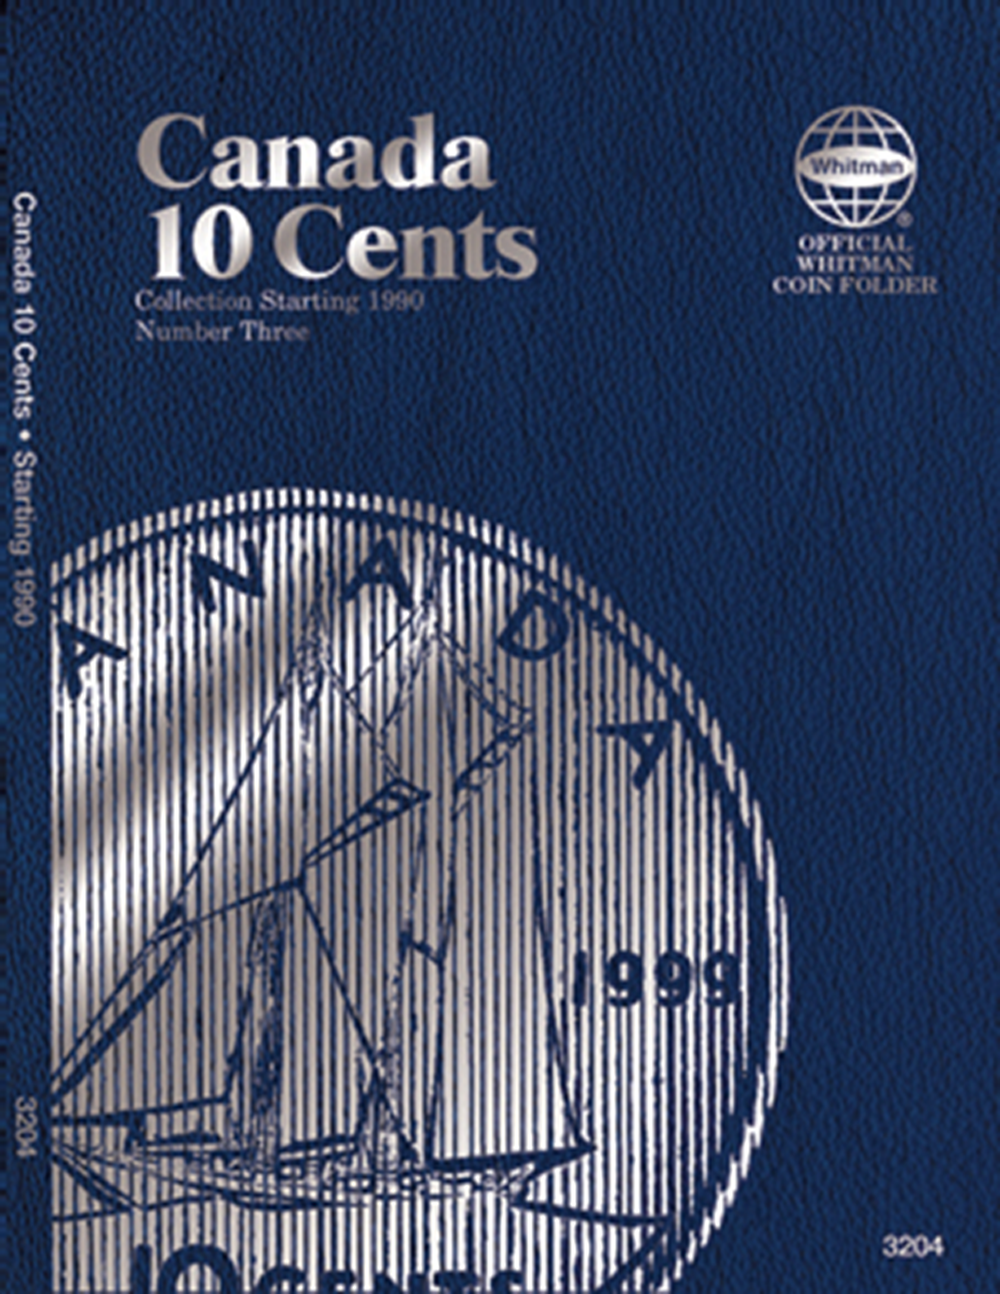 Canadian 10-Cent 1990-2012 Canadian 10-Cent 1990-2012, 3204